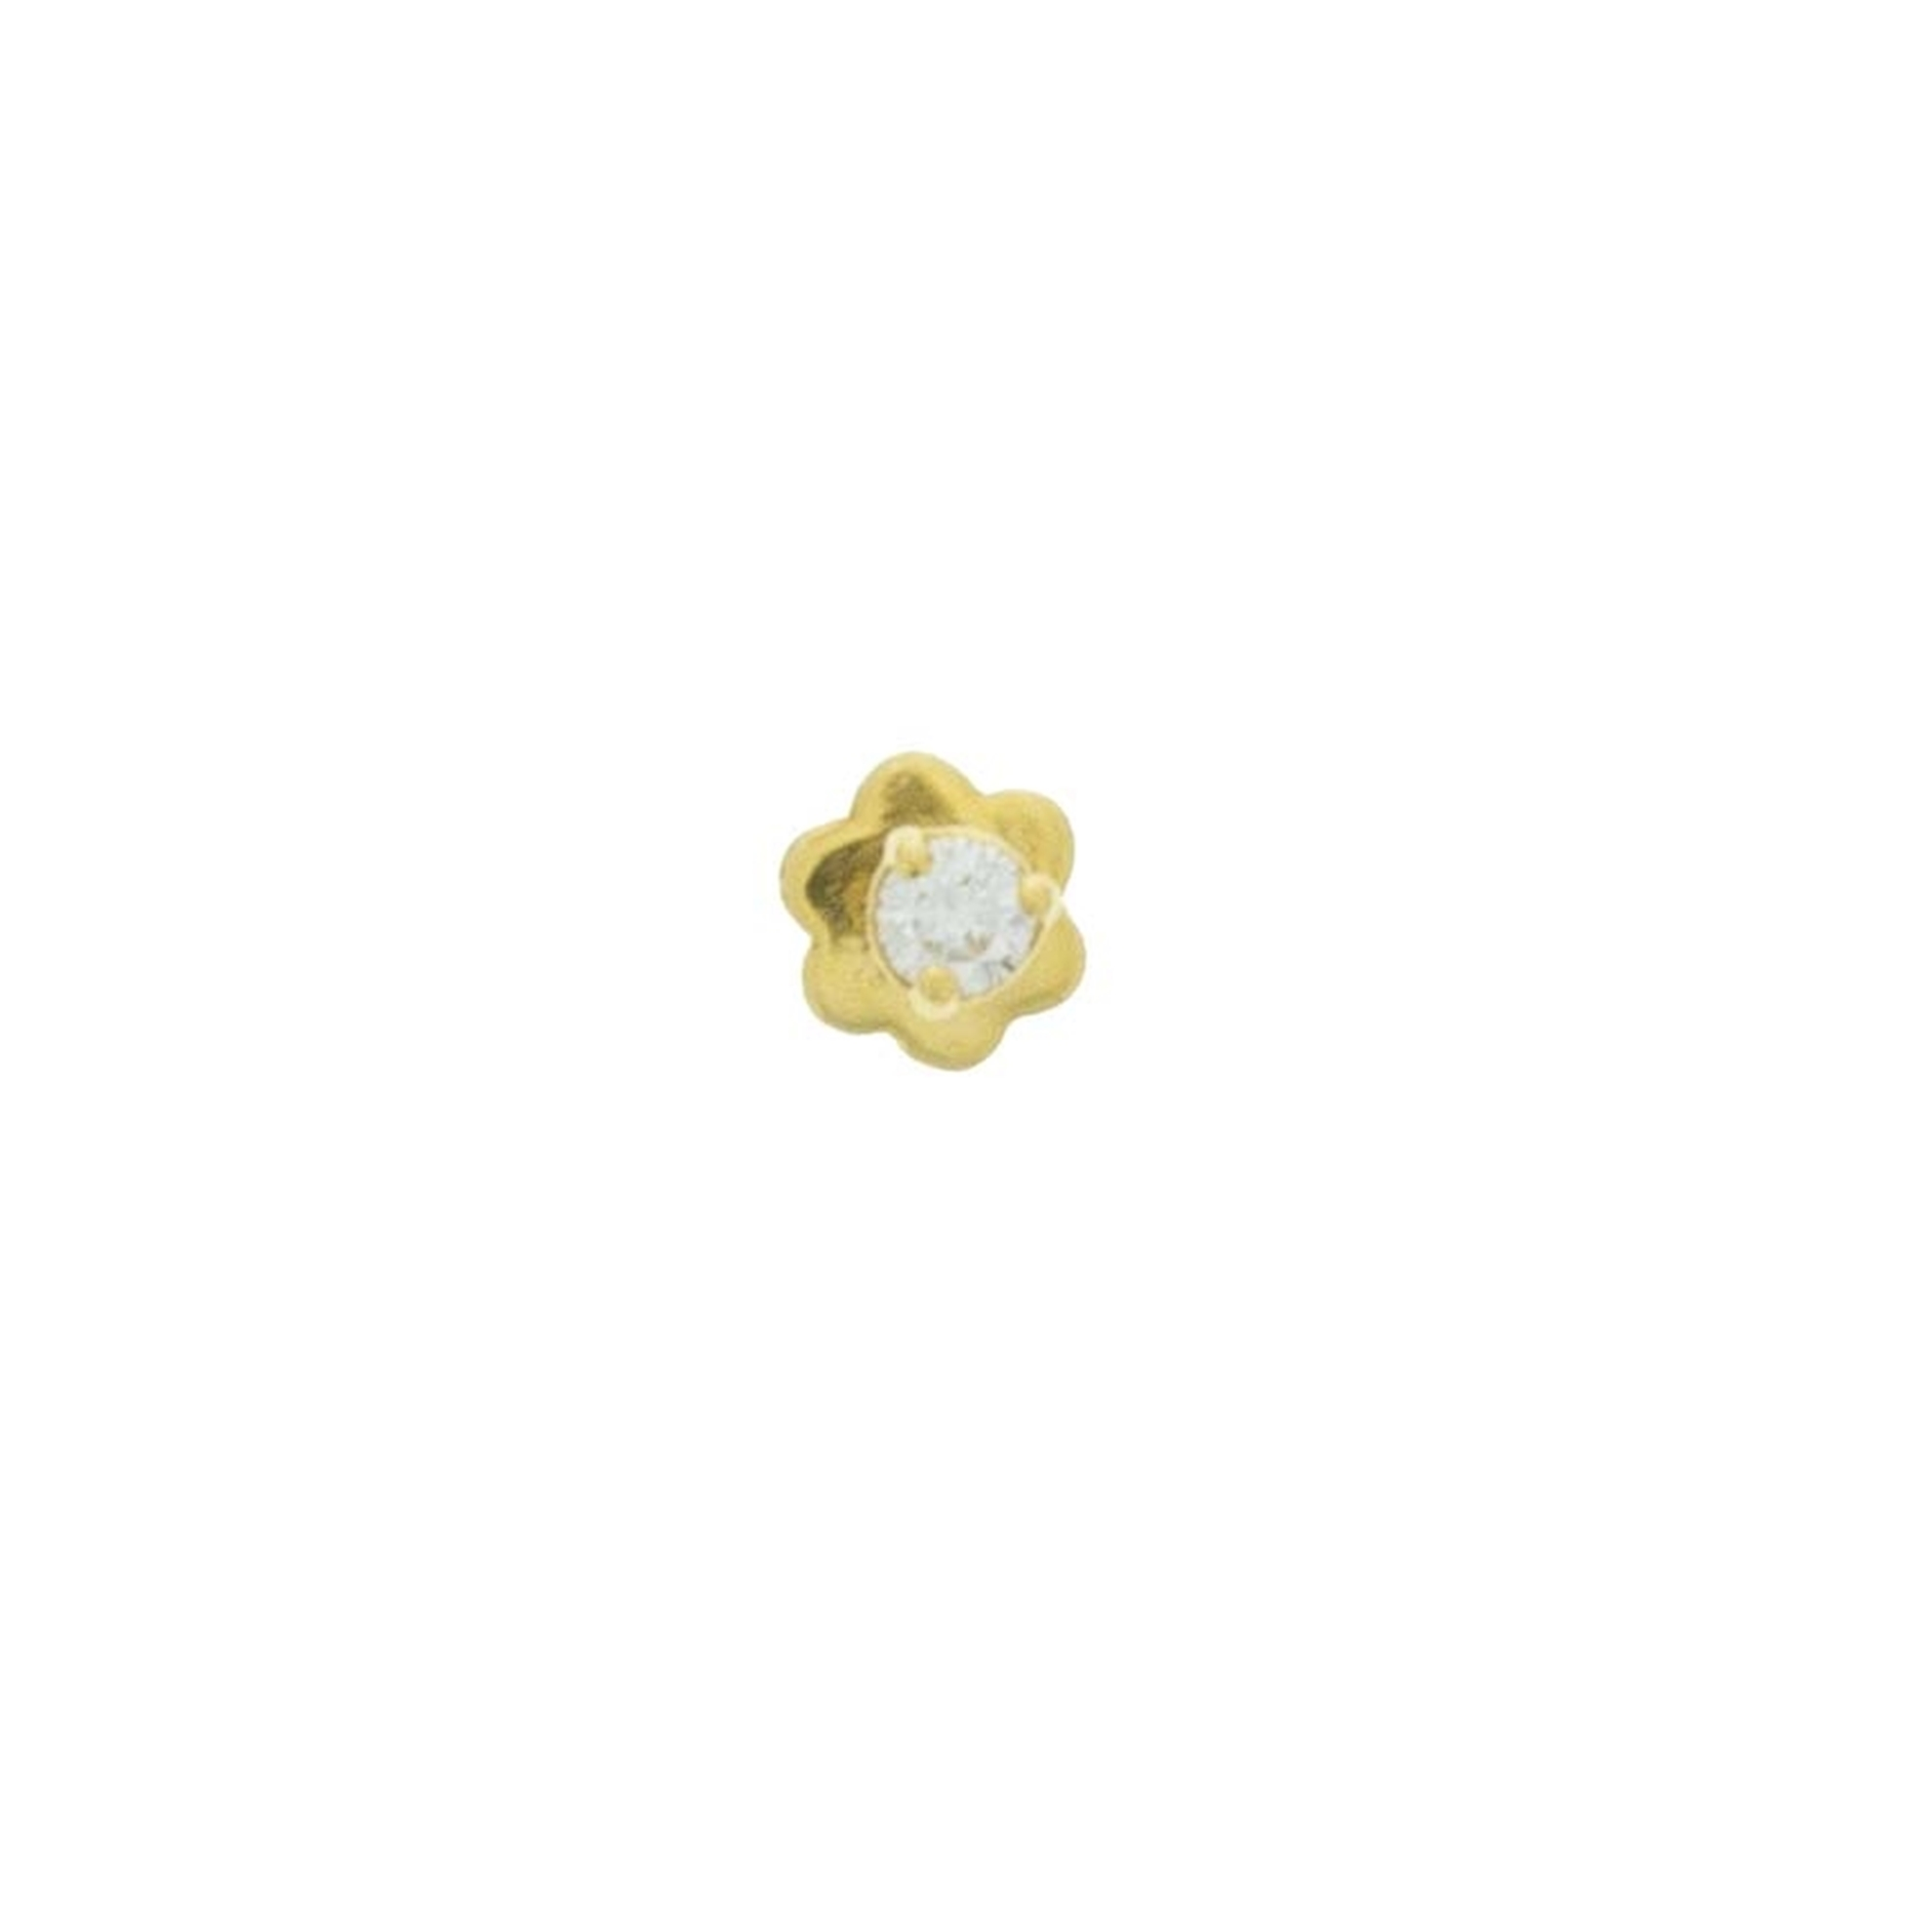 Regal Jewels Inc 18kt Gold Diamond Nosepin Online Indian Gold